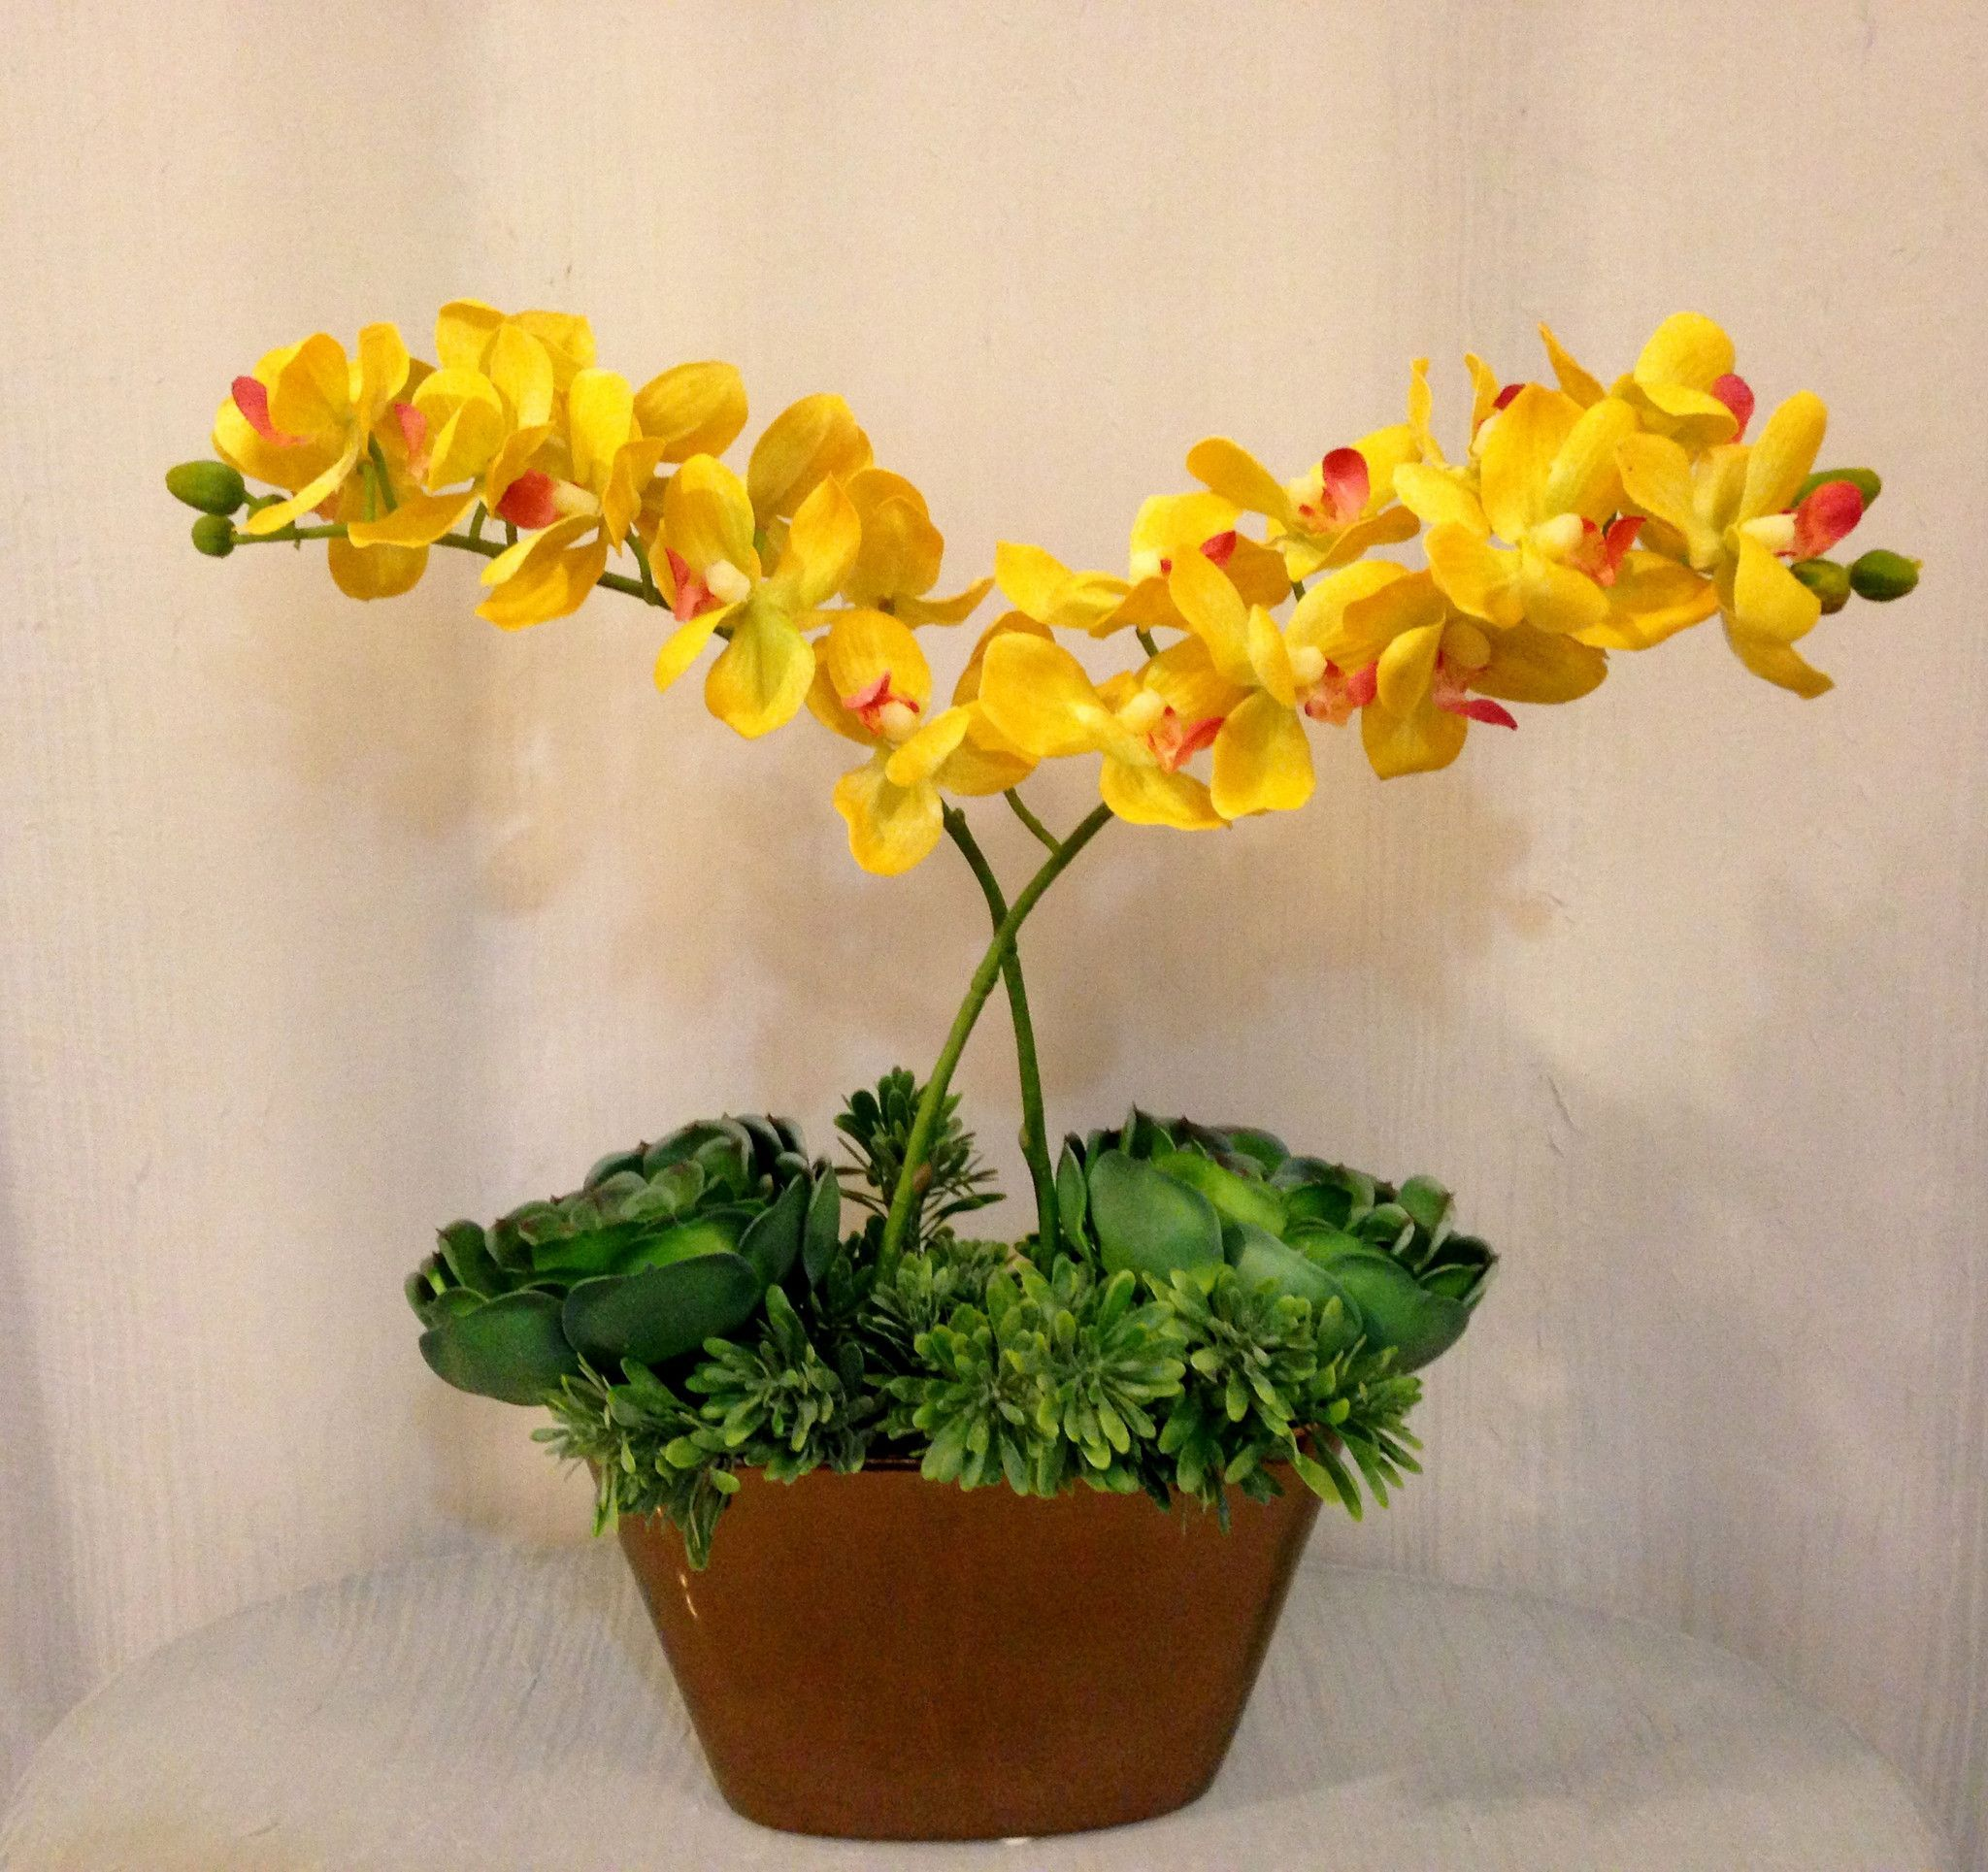 Phalaenopsis orchid and succulent plant arrangement in oval ceramic